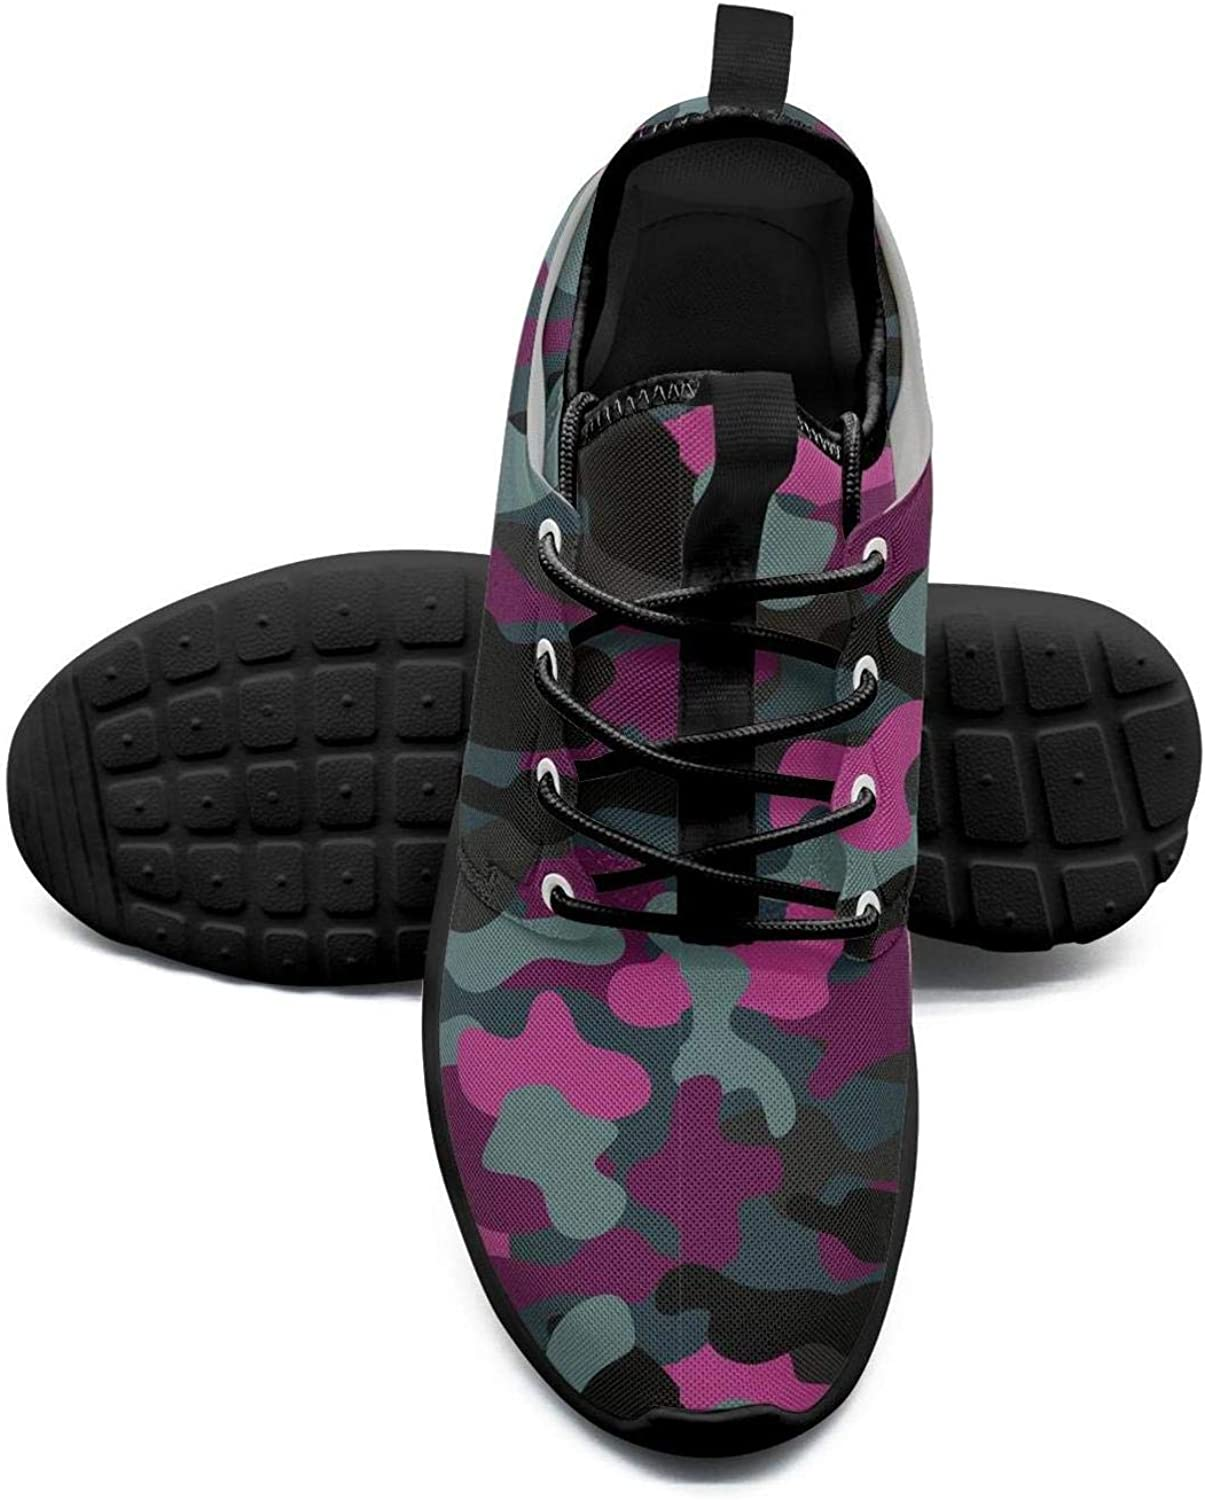 Gjsonmv Pink Digital camo Military mesh Lightweight shoes Women Summer Sports Cycling Sneakers shoes